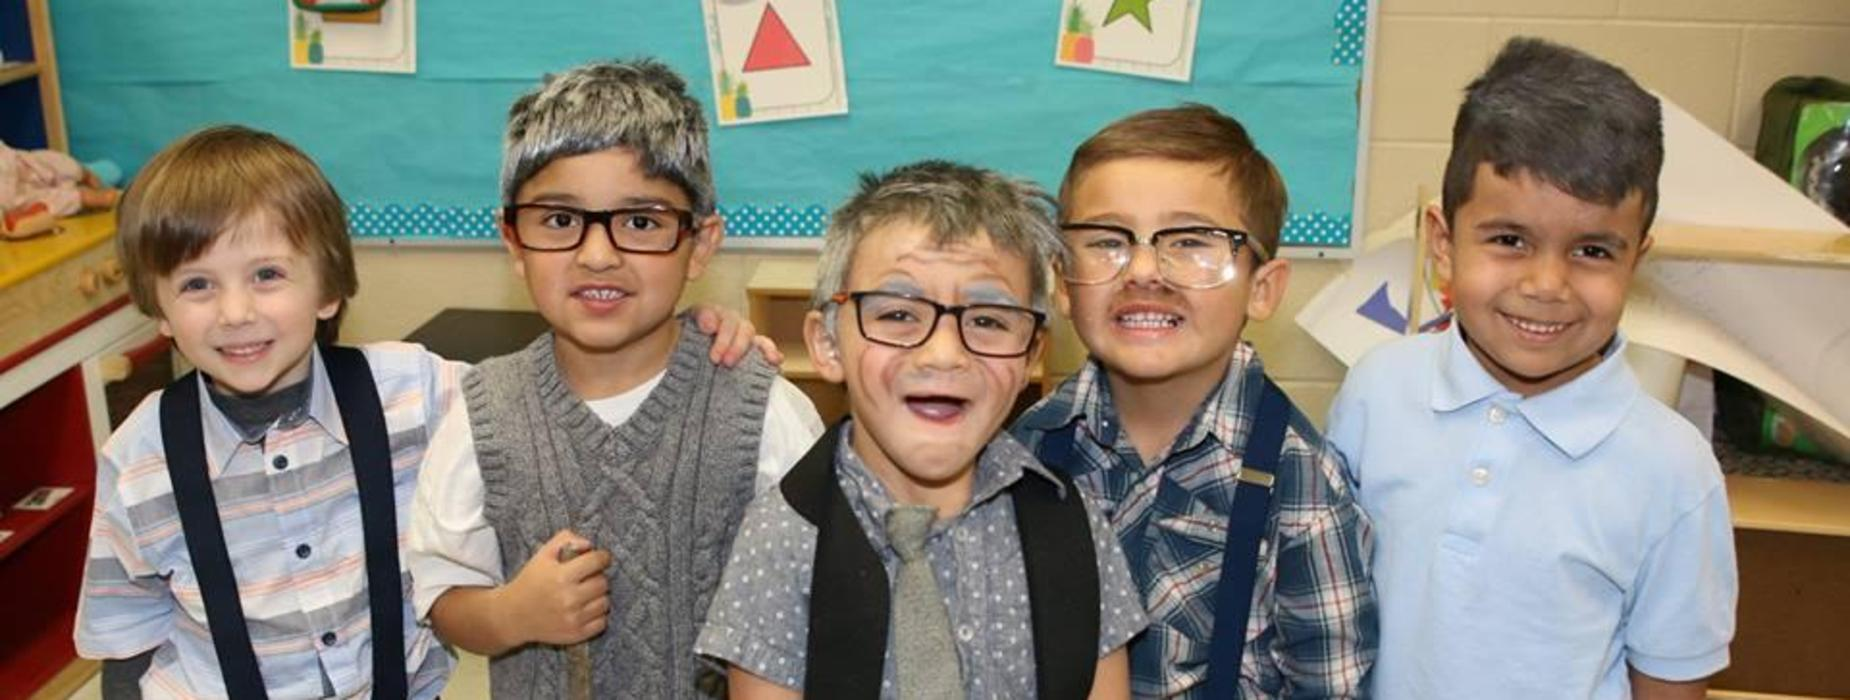 Students dressed like they are 100 years old